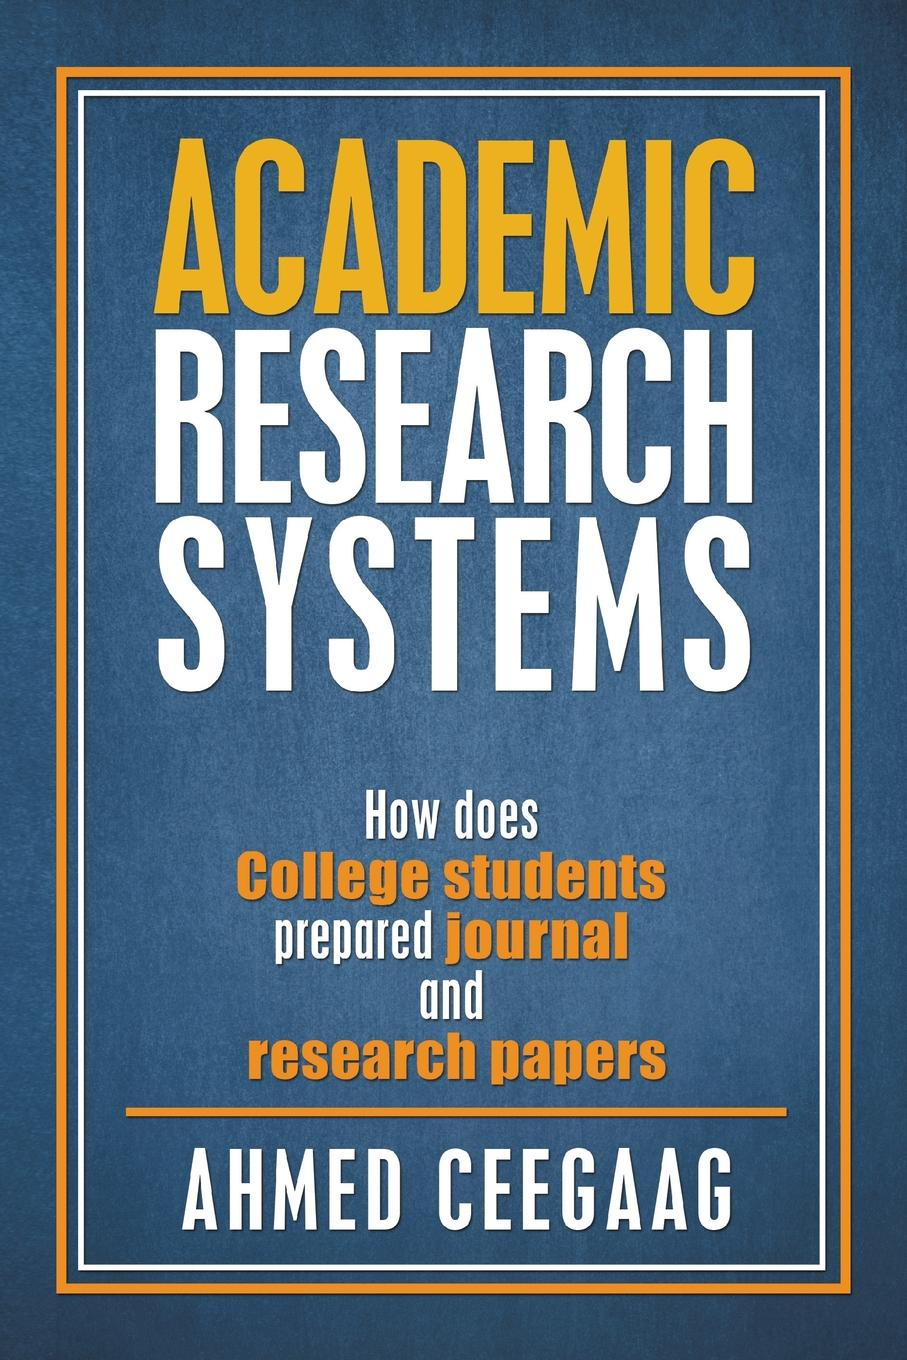 Ahmed Ceegaag Academic Research Systems. How Does College Students Prepared Journal and Papers